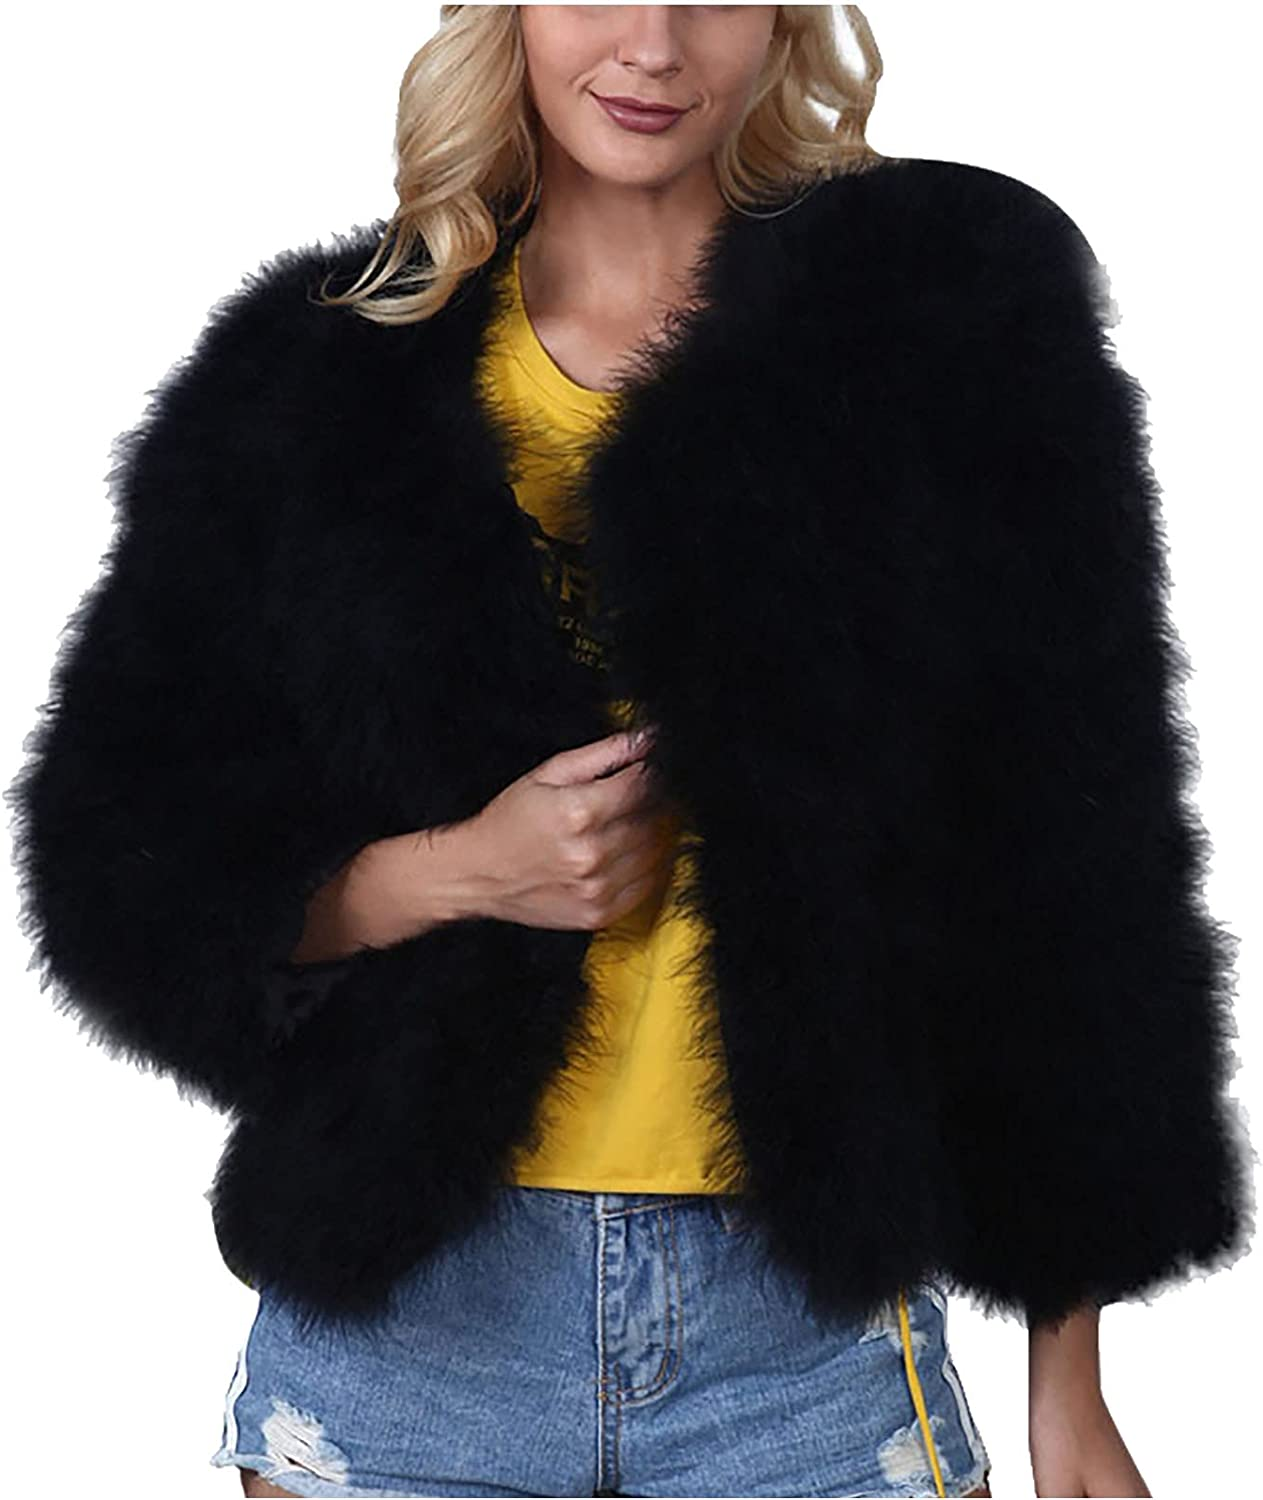 Kanzd Faux Fur Jackets Coats for Women Fashion Long Sleeve Open Front Solid Warm Faux Coat Jacket Turn Down Collar Outerwear